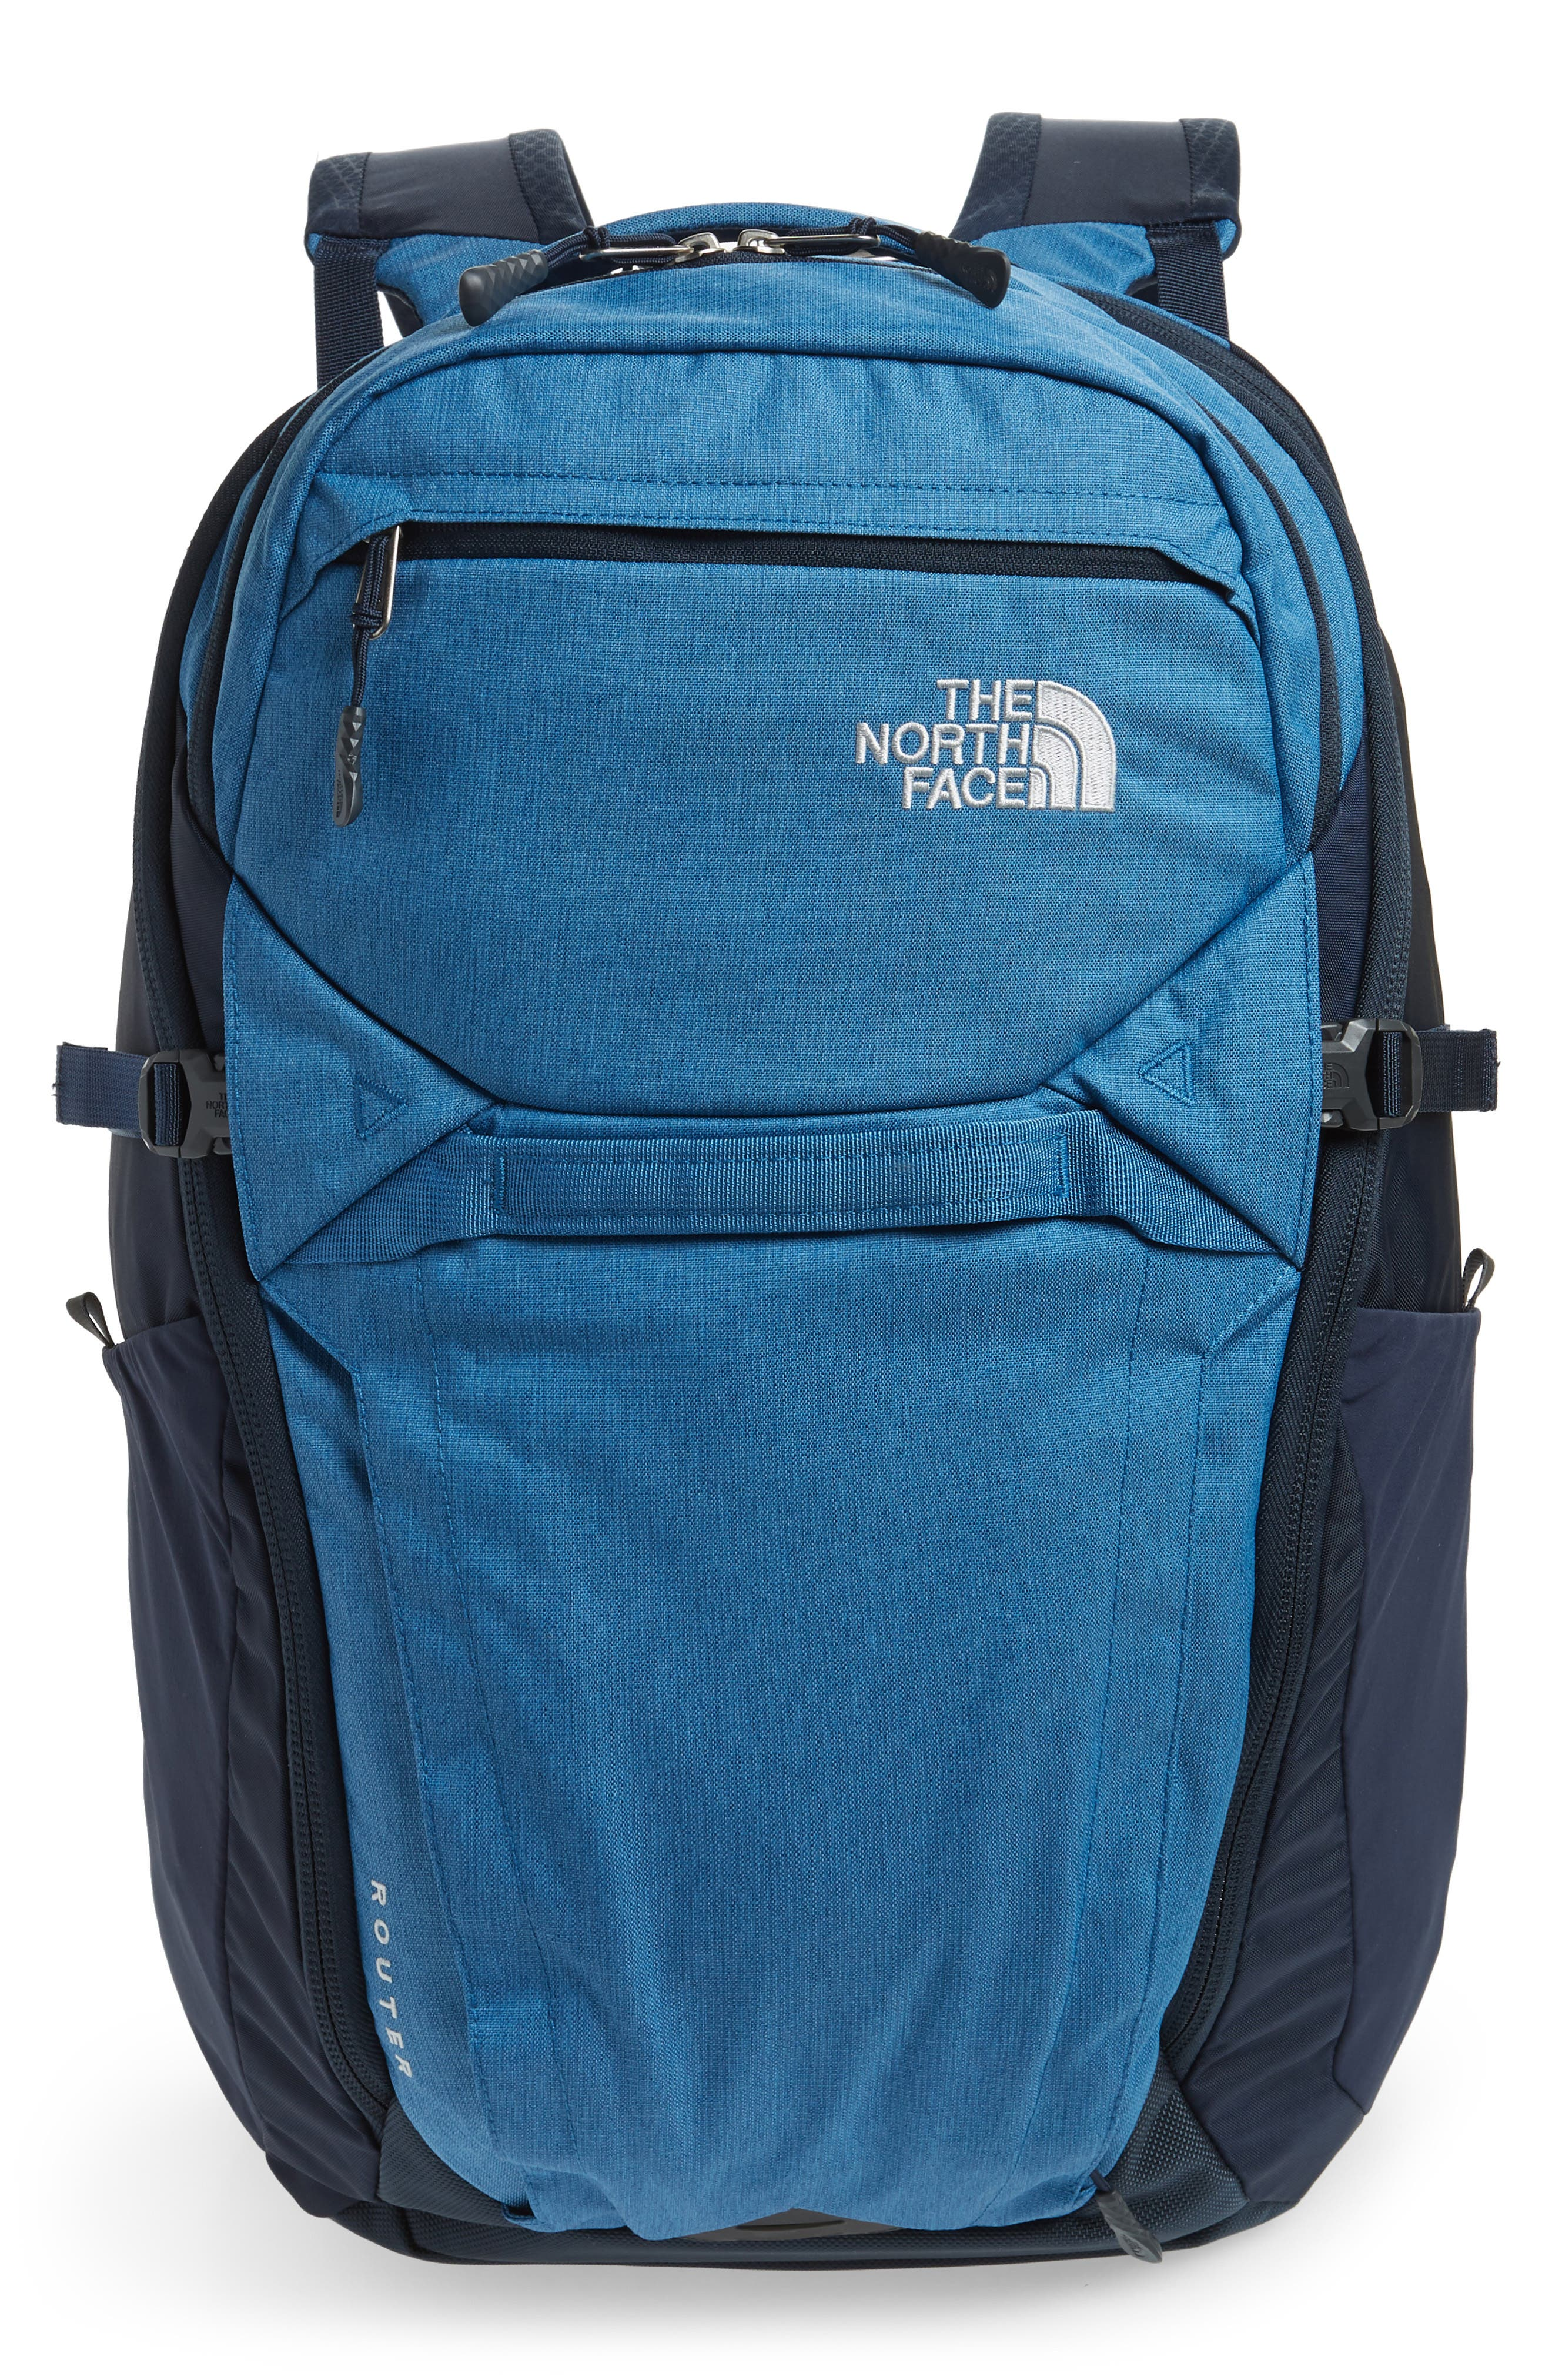 THE NORTH FACE,                             Router Backpack,                             Main thumbnail 1, color,                             DISH BLUE HEATHER/ URBAN NAVY